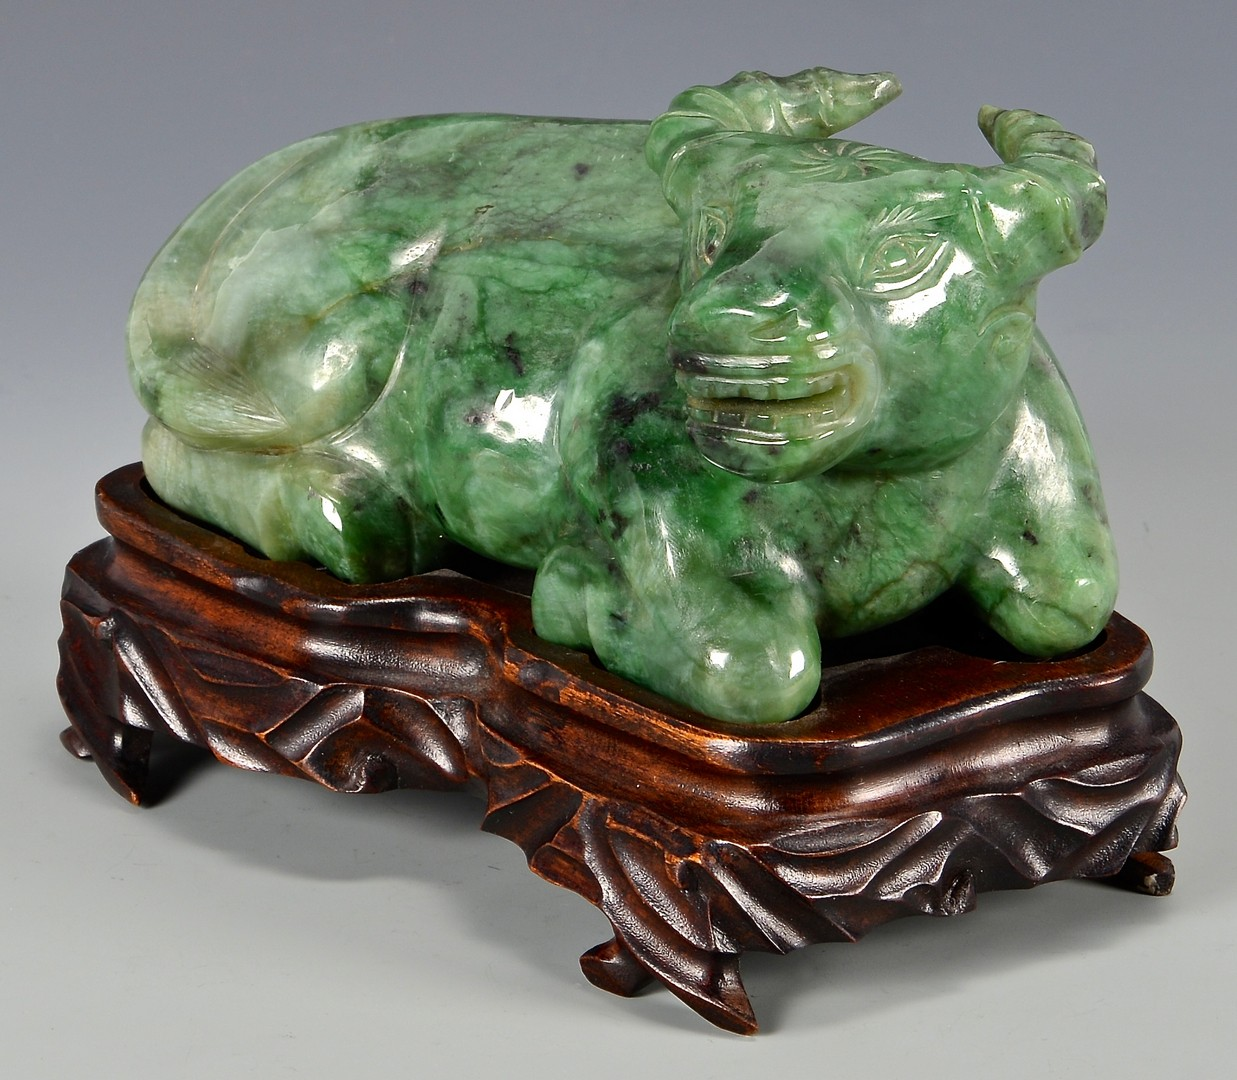 Lot 11: Nephrite Jade Water Buffalo